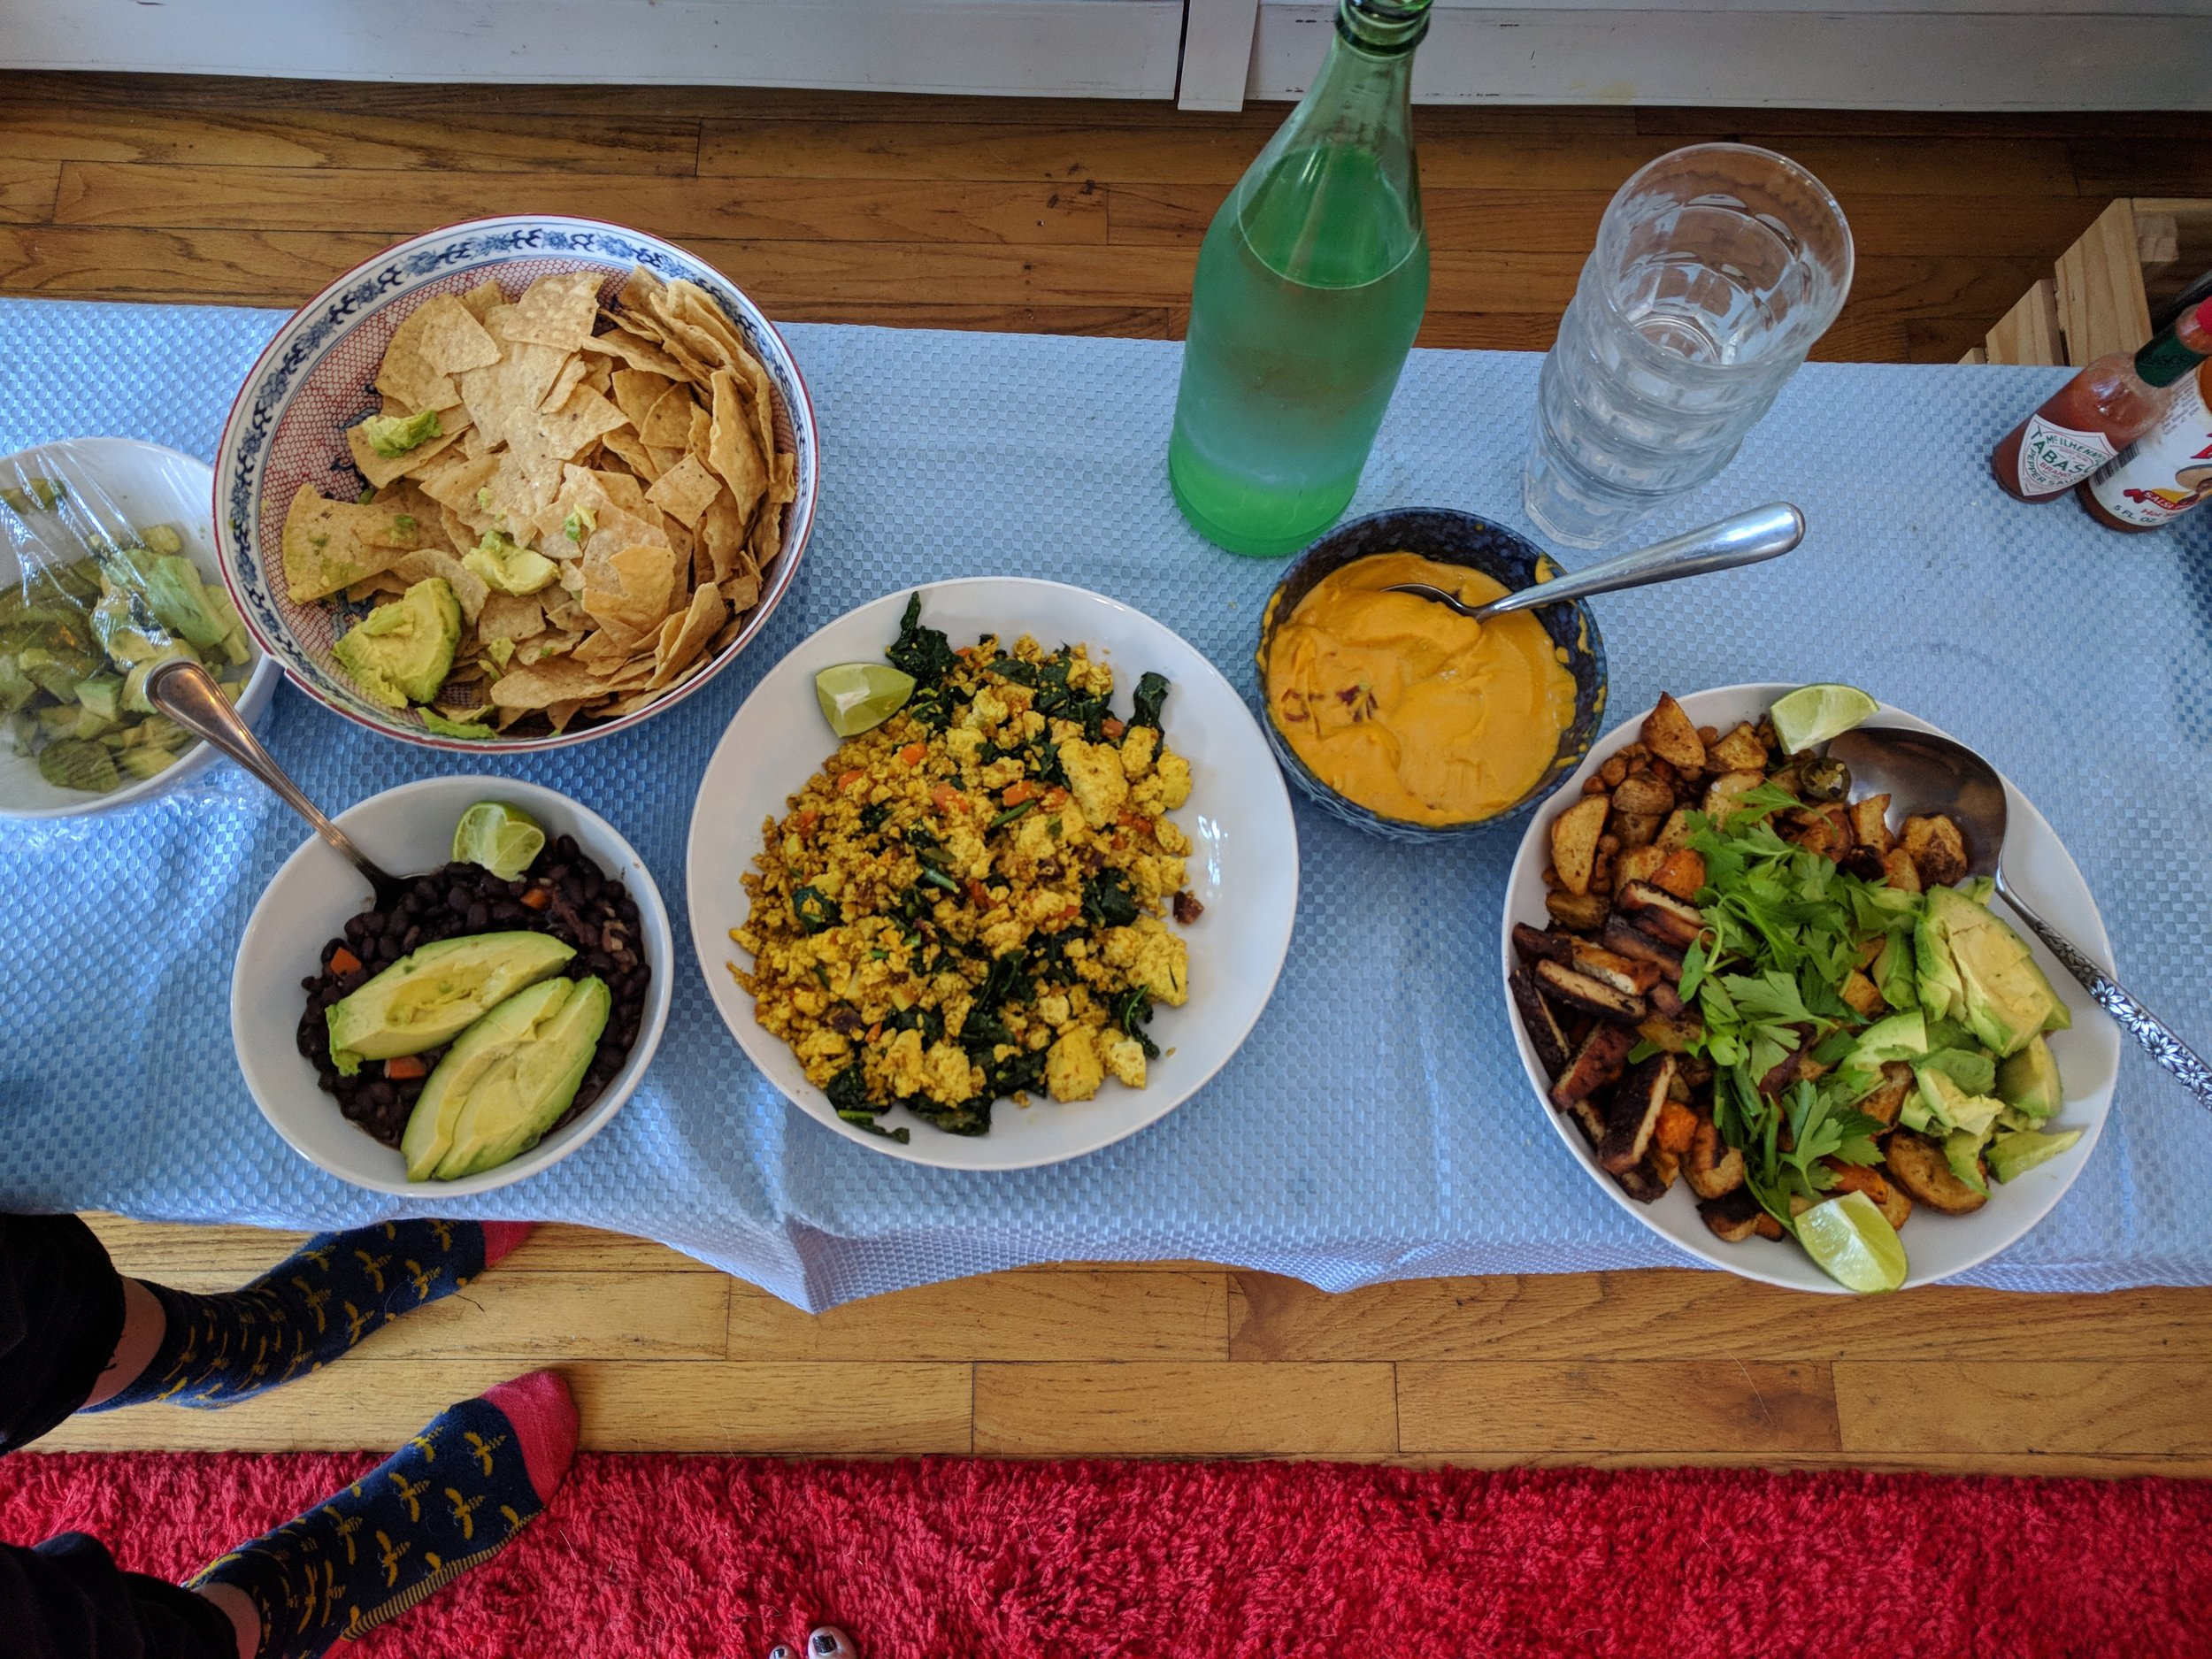 And this would be Thanksgiving dinner, 2017